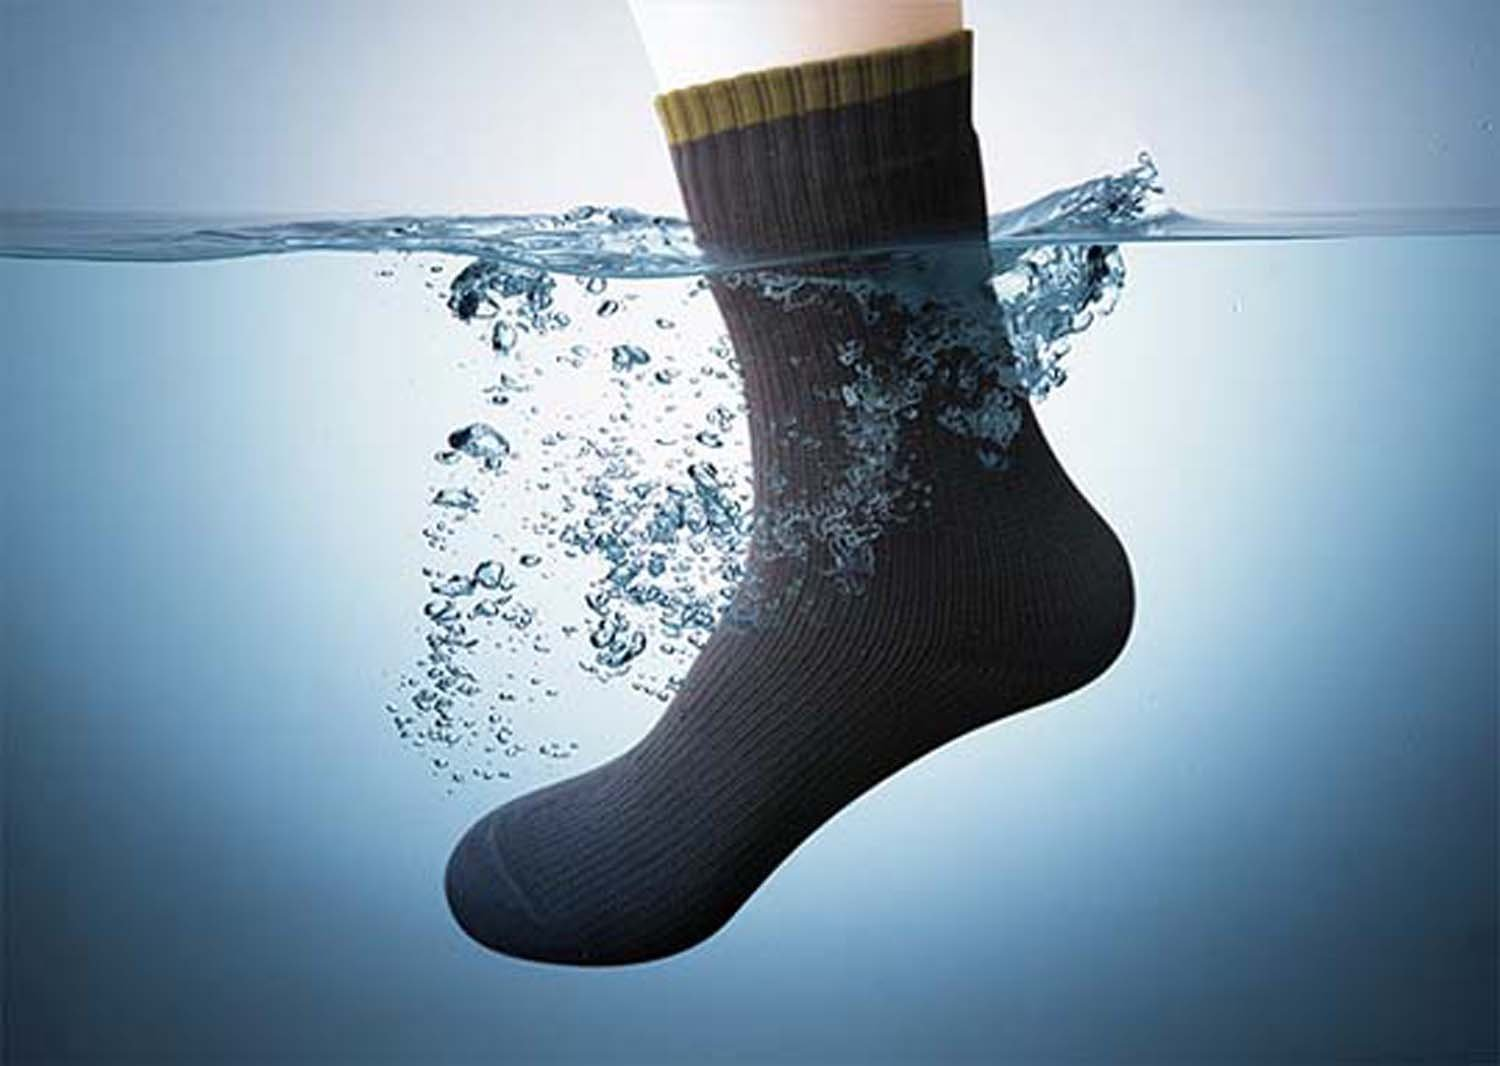 So waterproof, you're feet would stay dry in a bucket of water!!